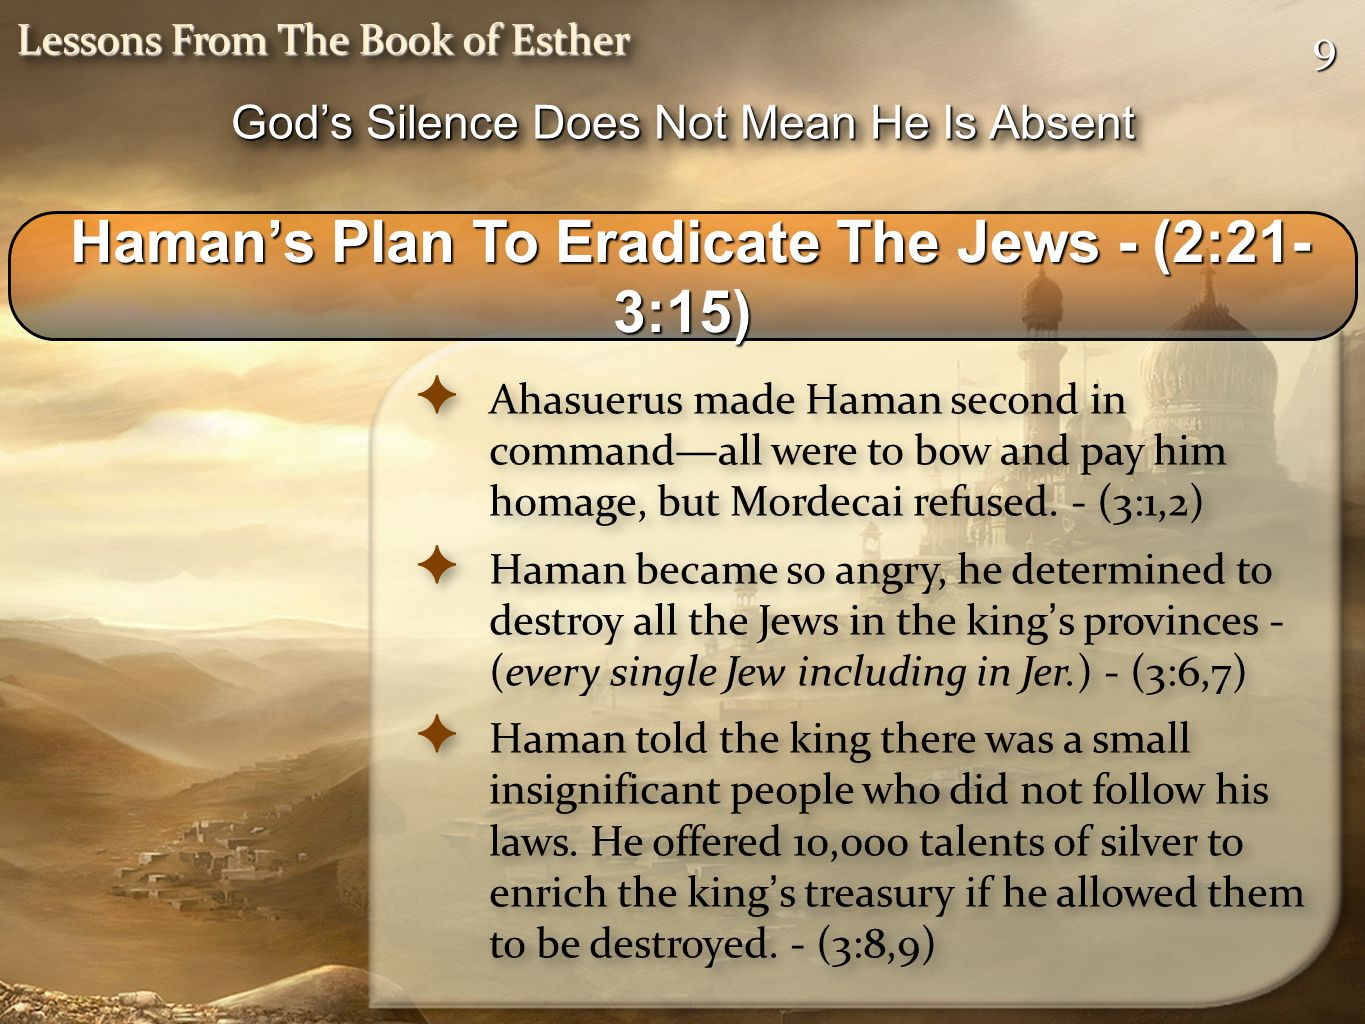 99 Lessons From The Book of Esther ✦ Ahasuerus made Haman second in command—all were to bow and pay him homage, but Mordecai refused. - (3:1,2) ✦ Hama